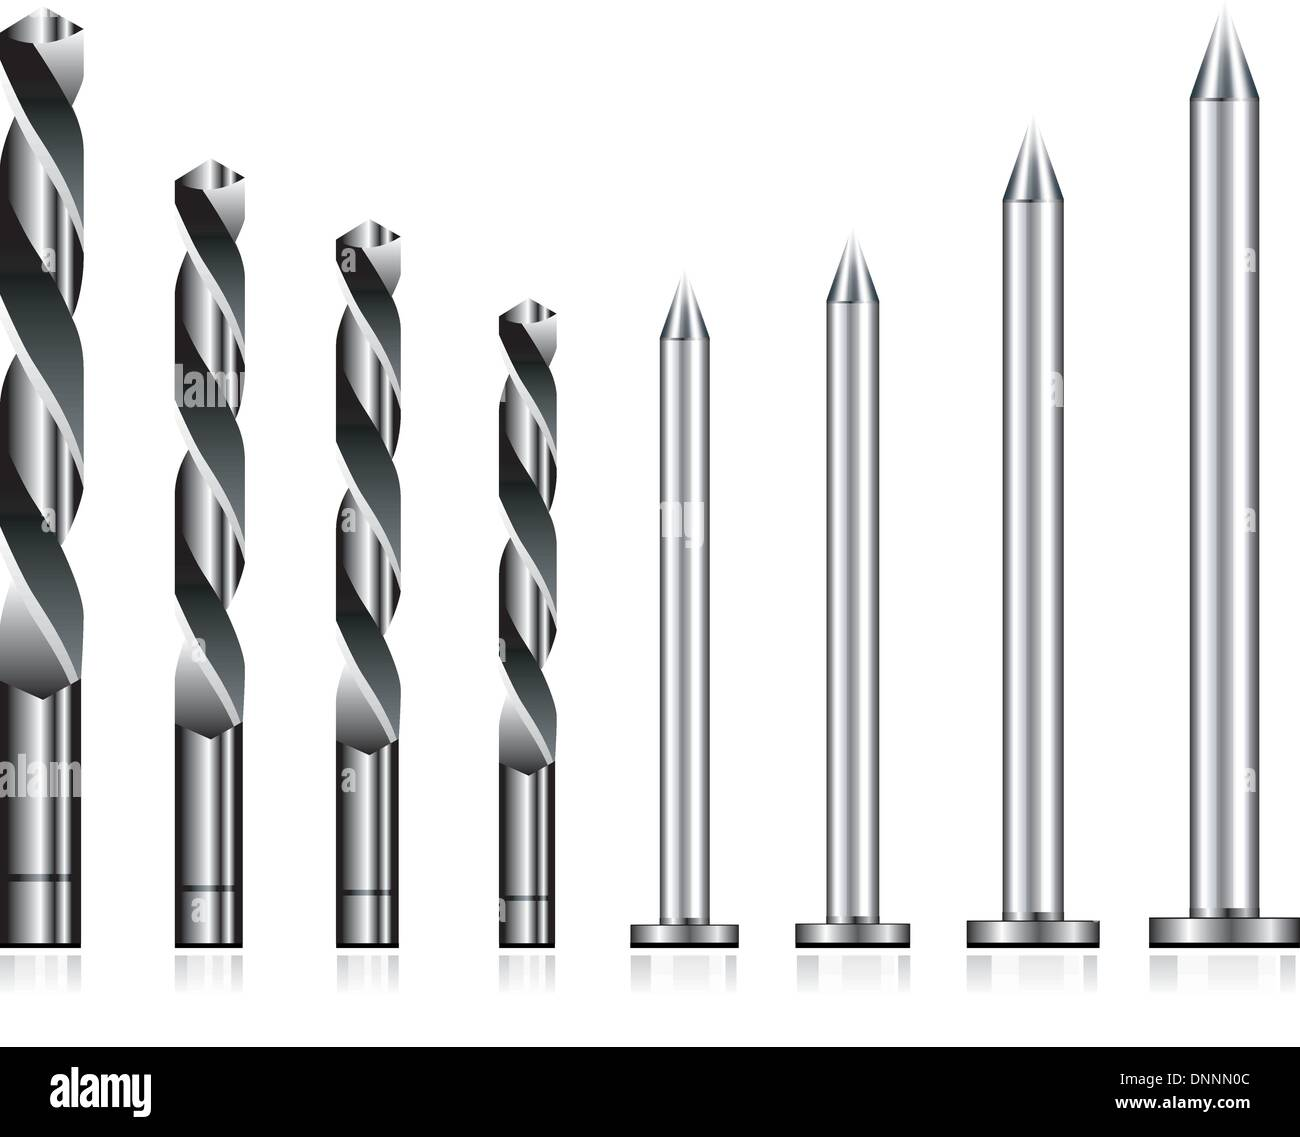 Realistic drill bit and steel nail set - Stock Image